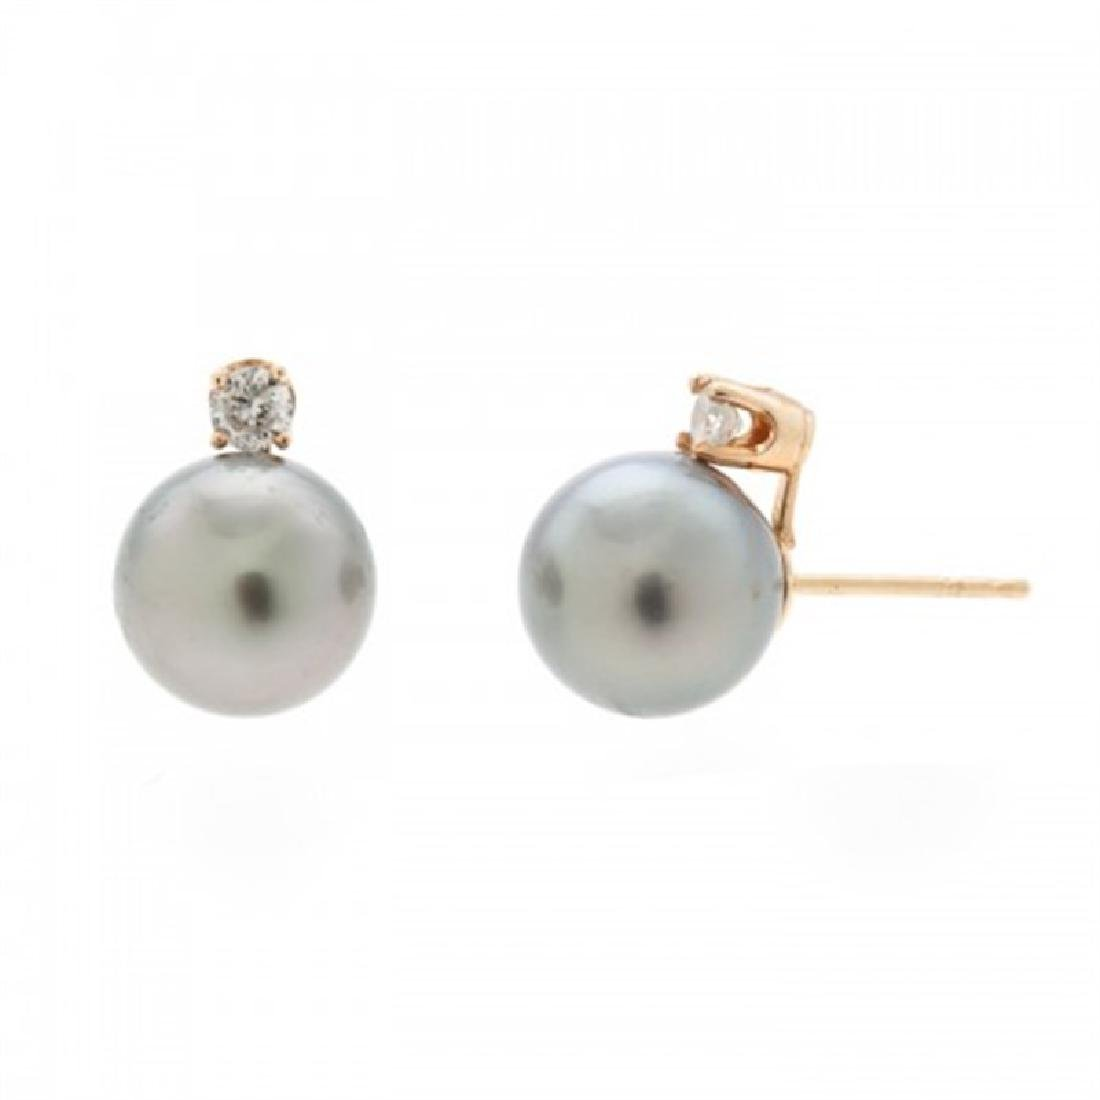 9.0-9.5mm Tahitian Pearl Earrings with Diamond